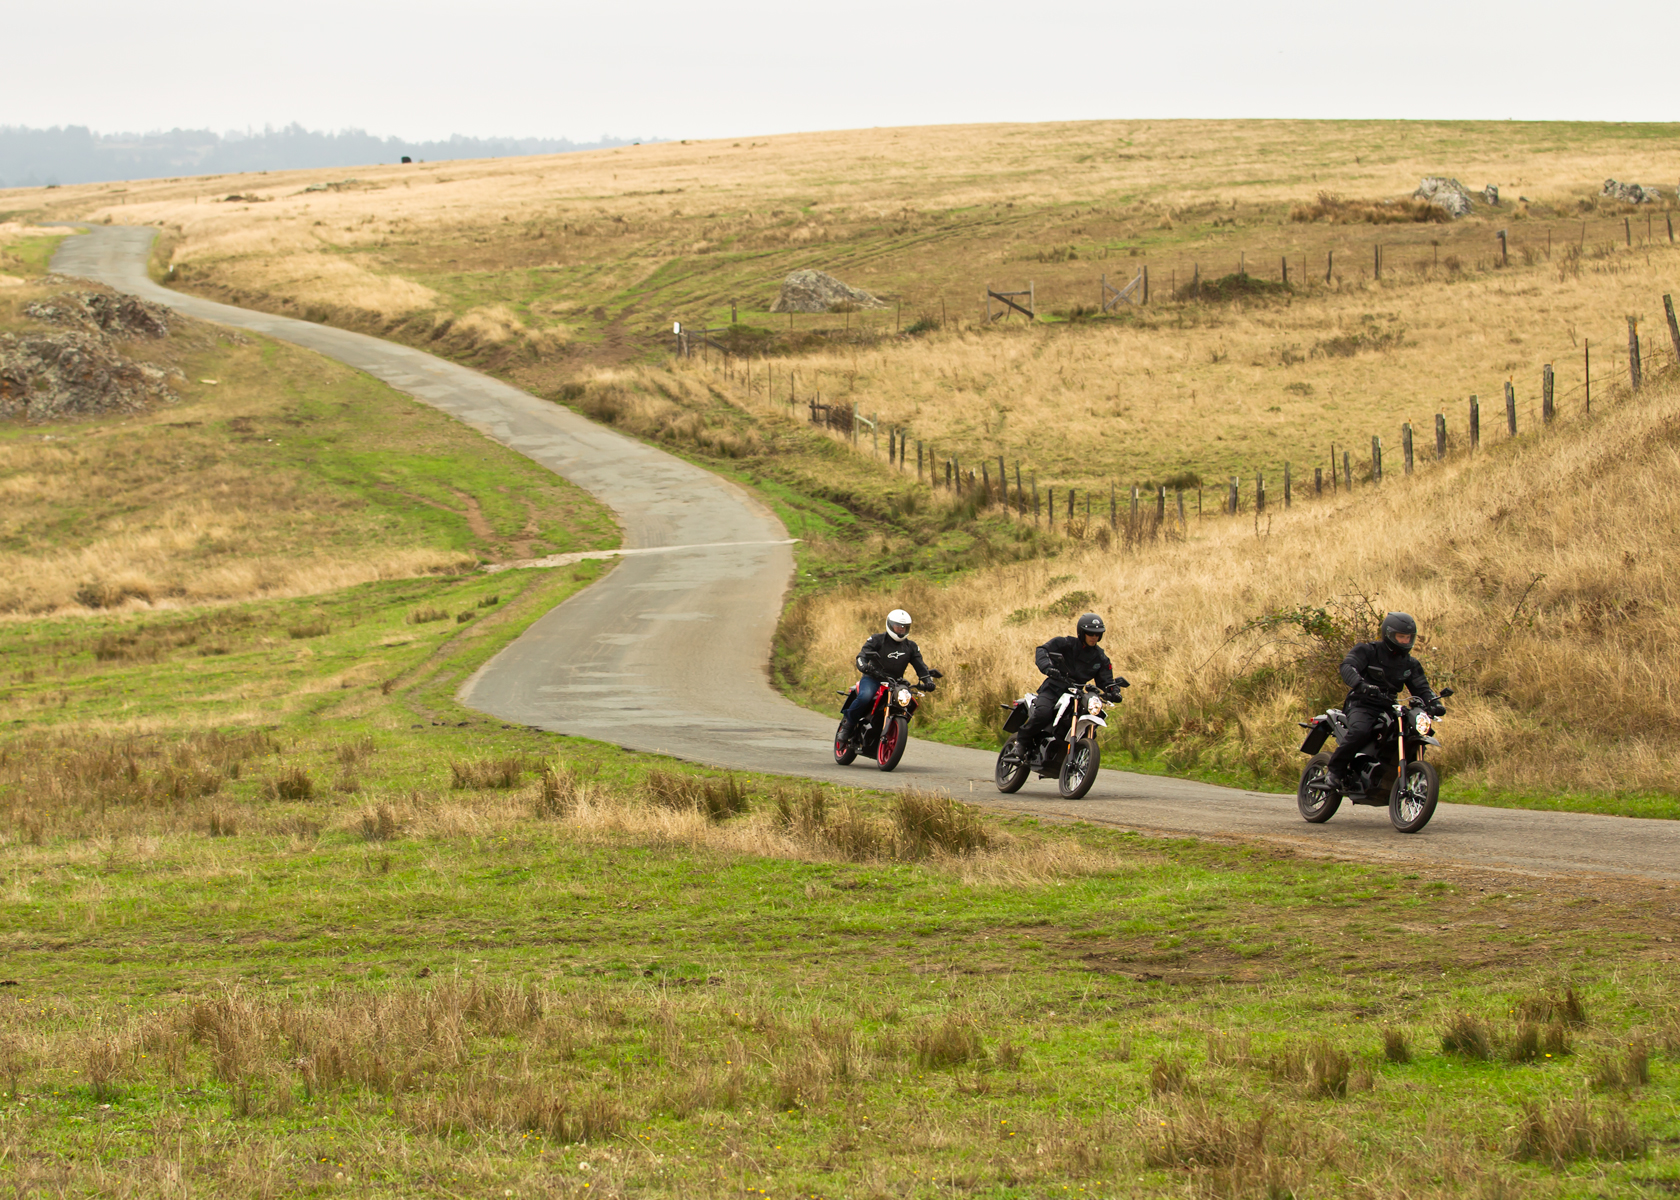 2012 Zero Motorcycles: Cruising in the Country